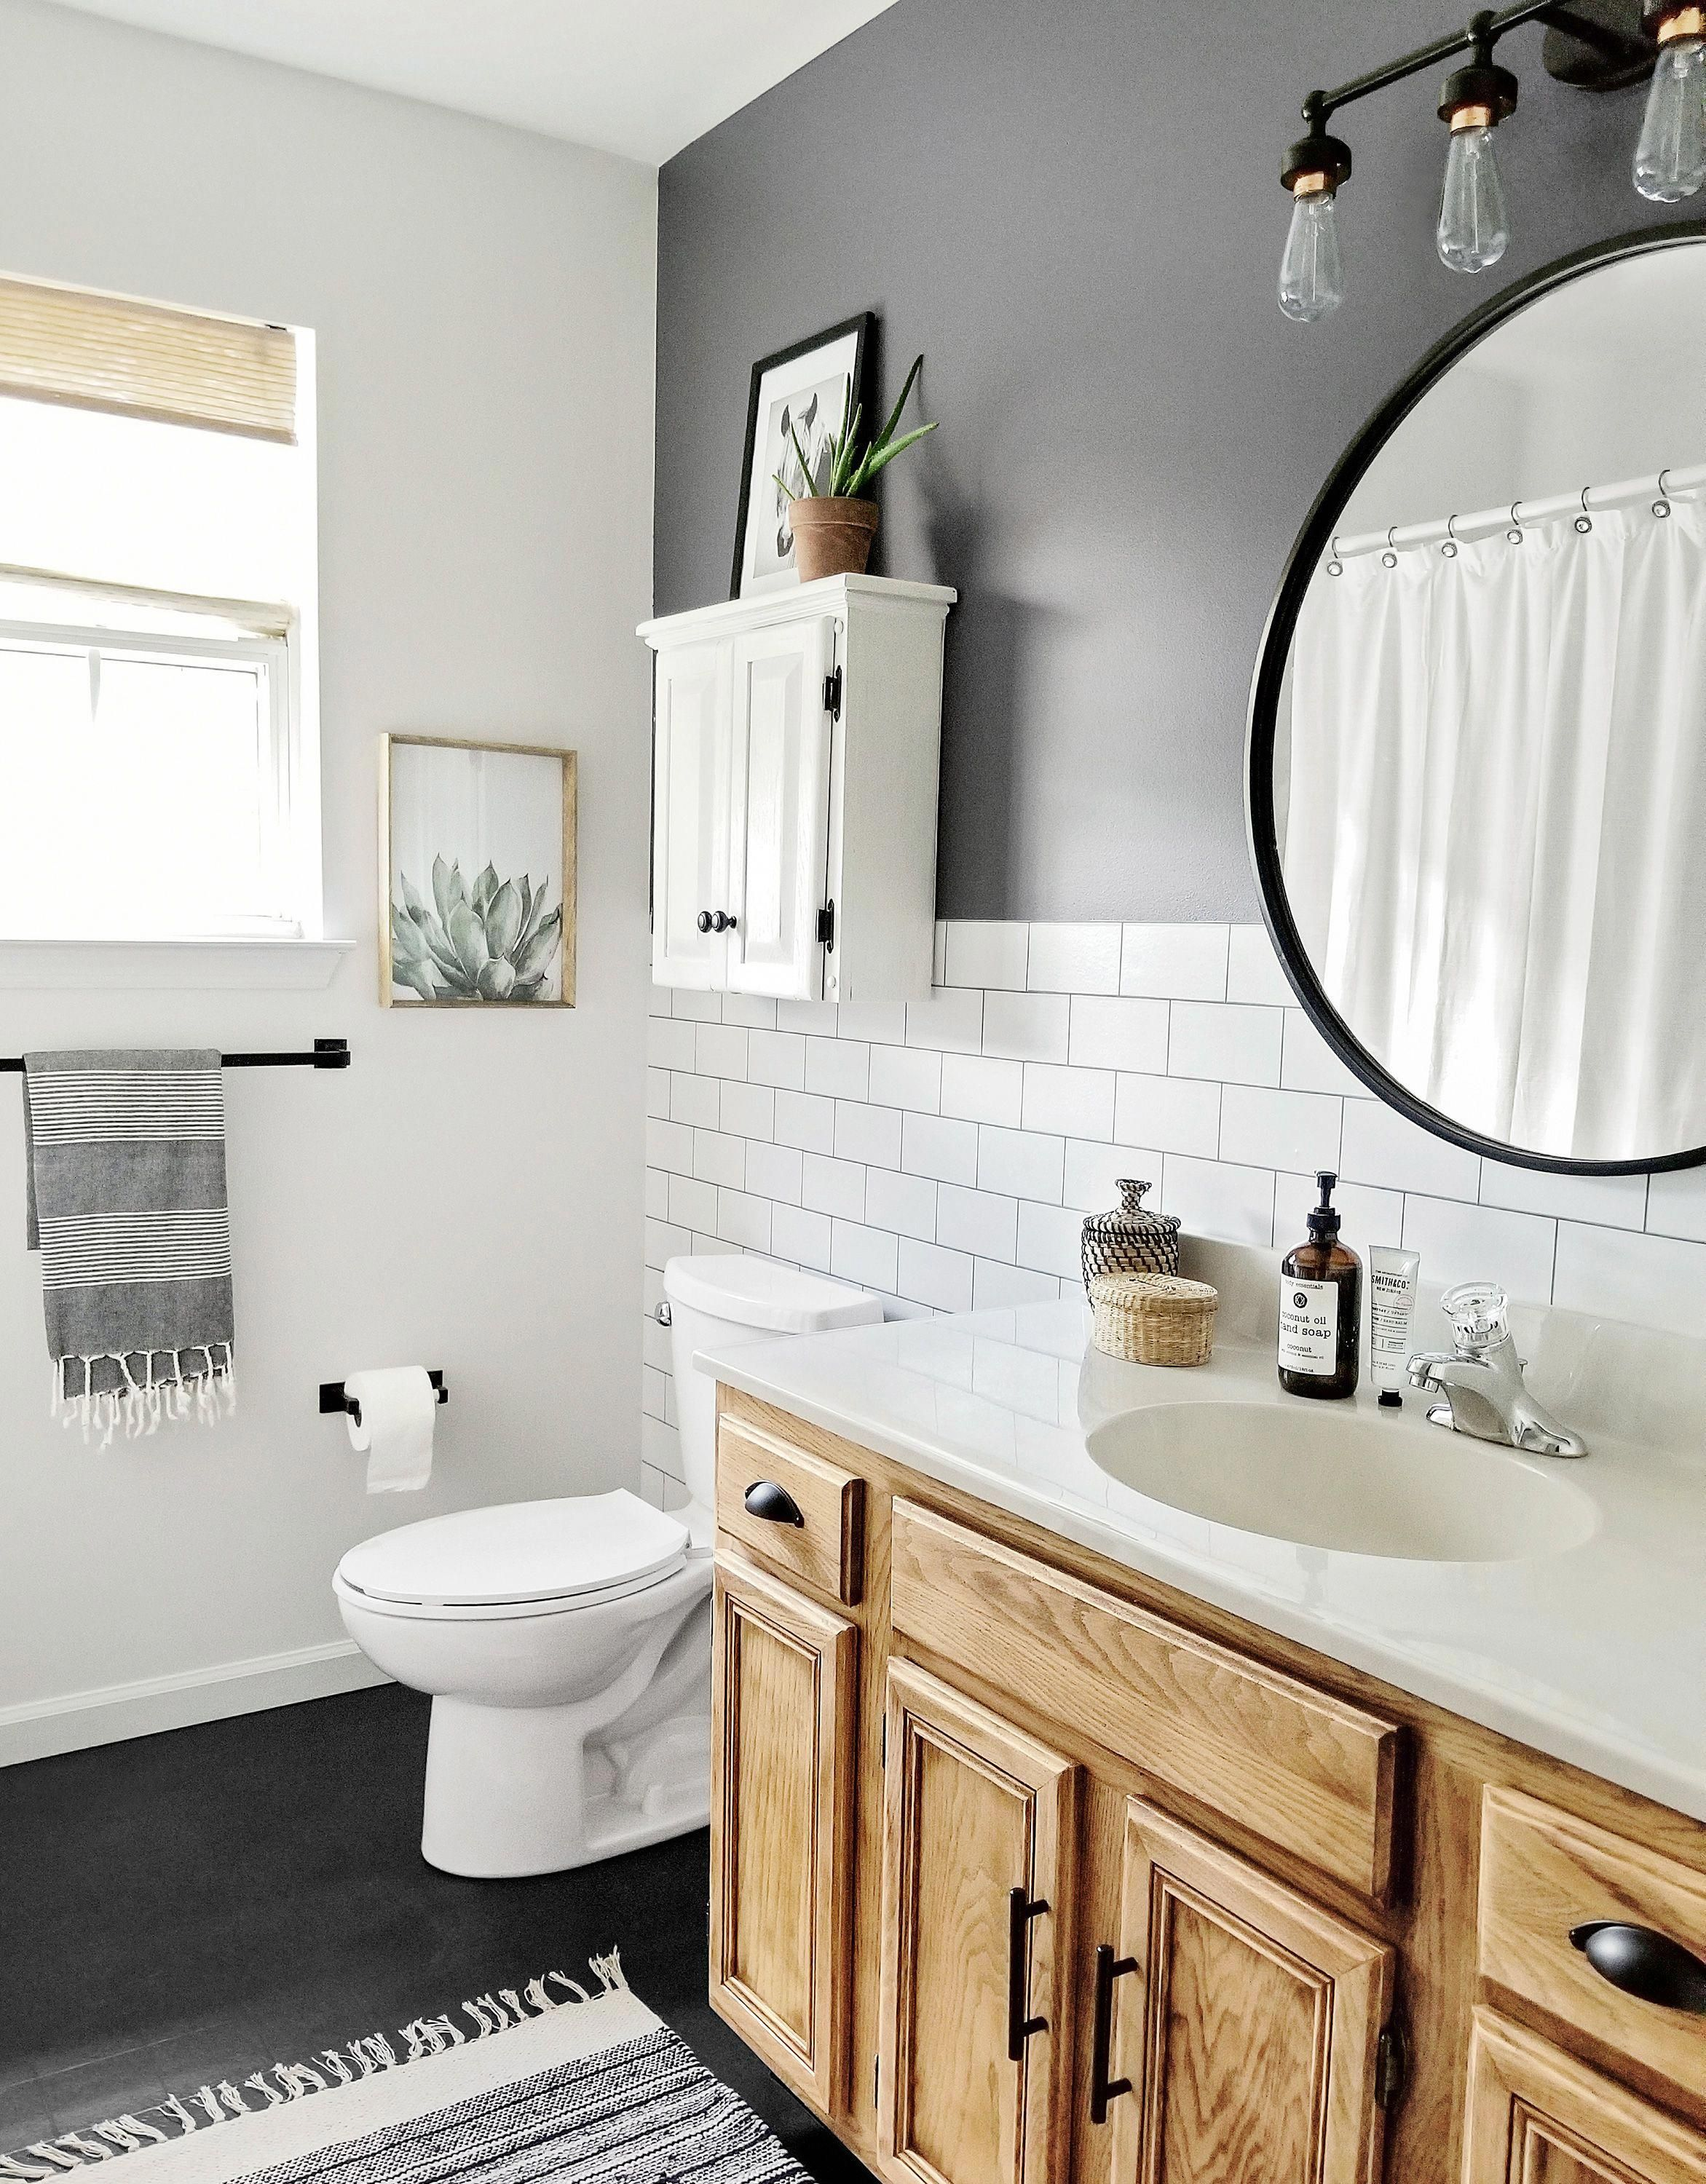 Kitchen And Bathroom Remodel Upgrade Design Ideas And Expert Advice From Remodeling To Easy Upg In 2020 Kitchen Bathroom Remodel Bathrooms Remodel Bathroom Design